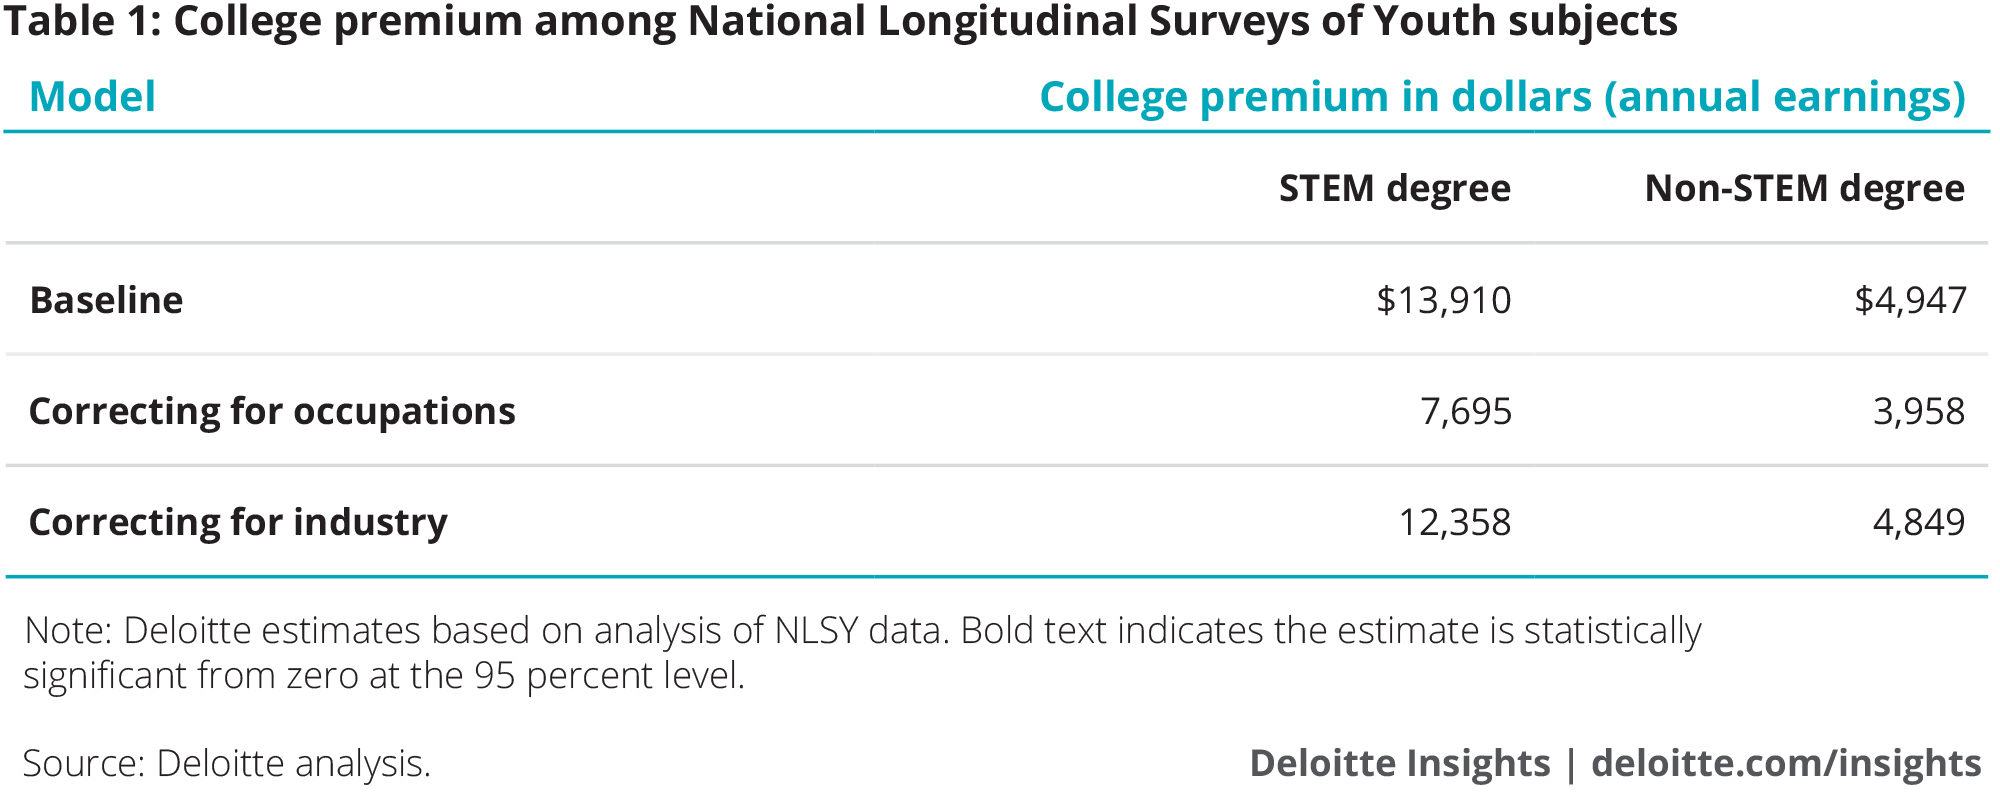 College premium among National Longitudinal Surveys of Youth subjects